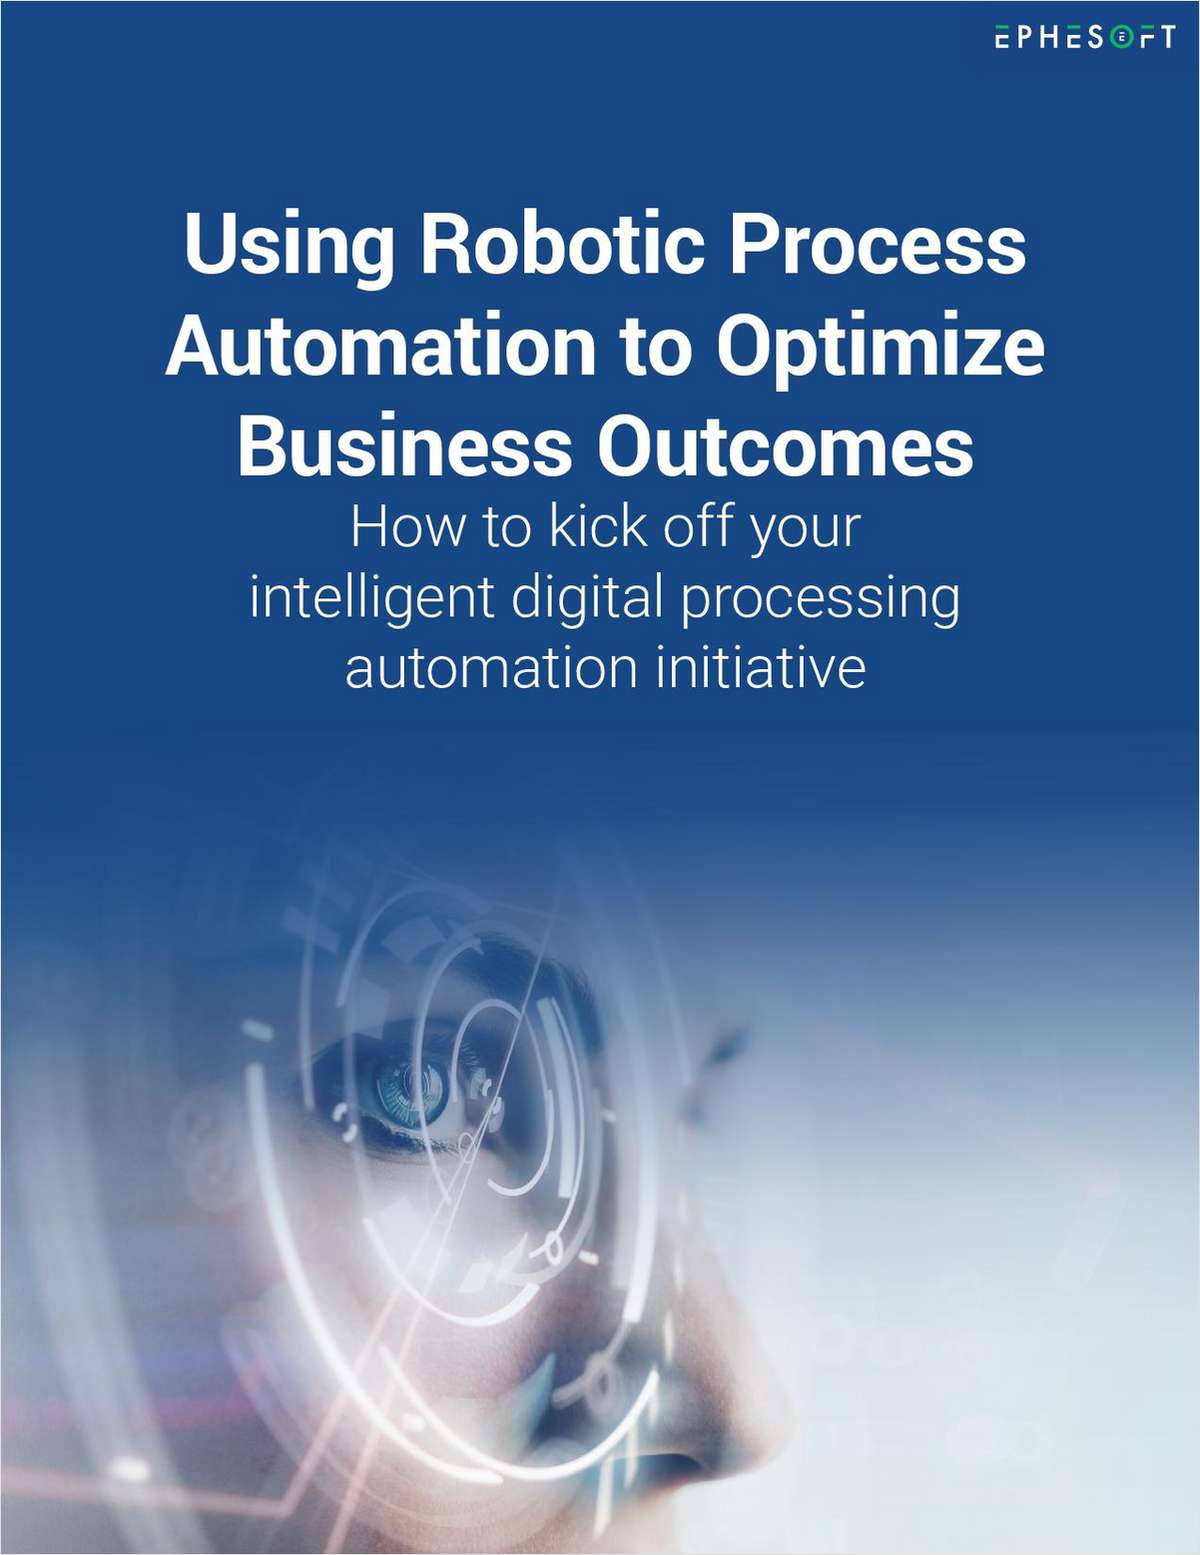 Using Robotic Process Automation to Optimize Business Outcomes